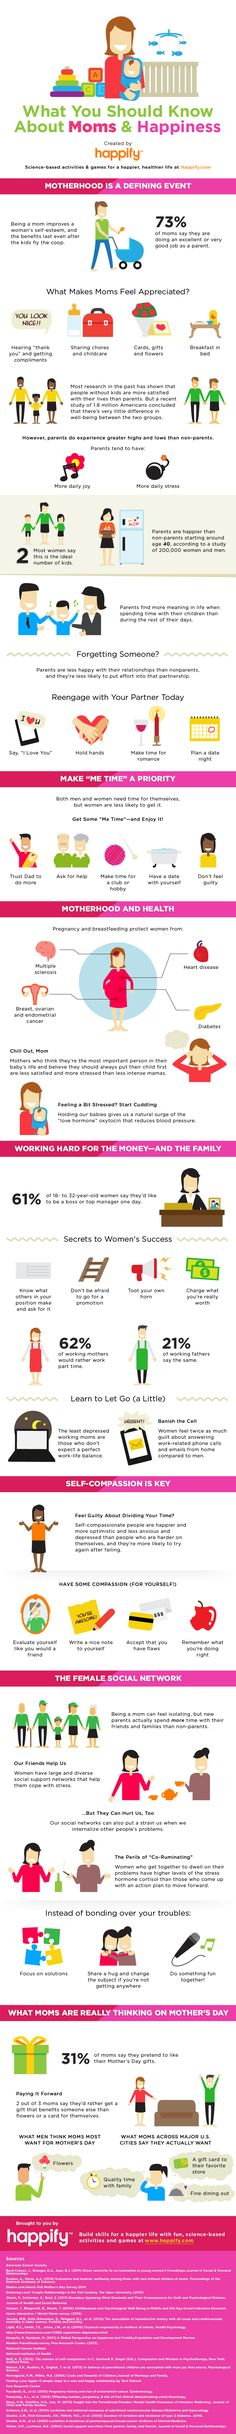 What You Should Know About Mom and Happiness